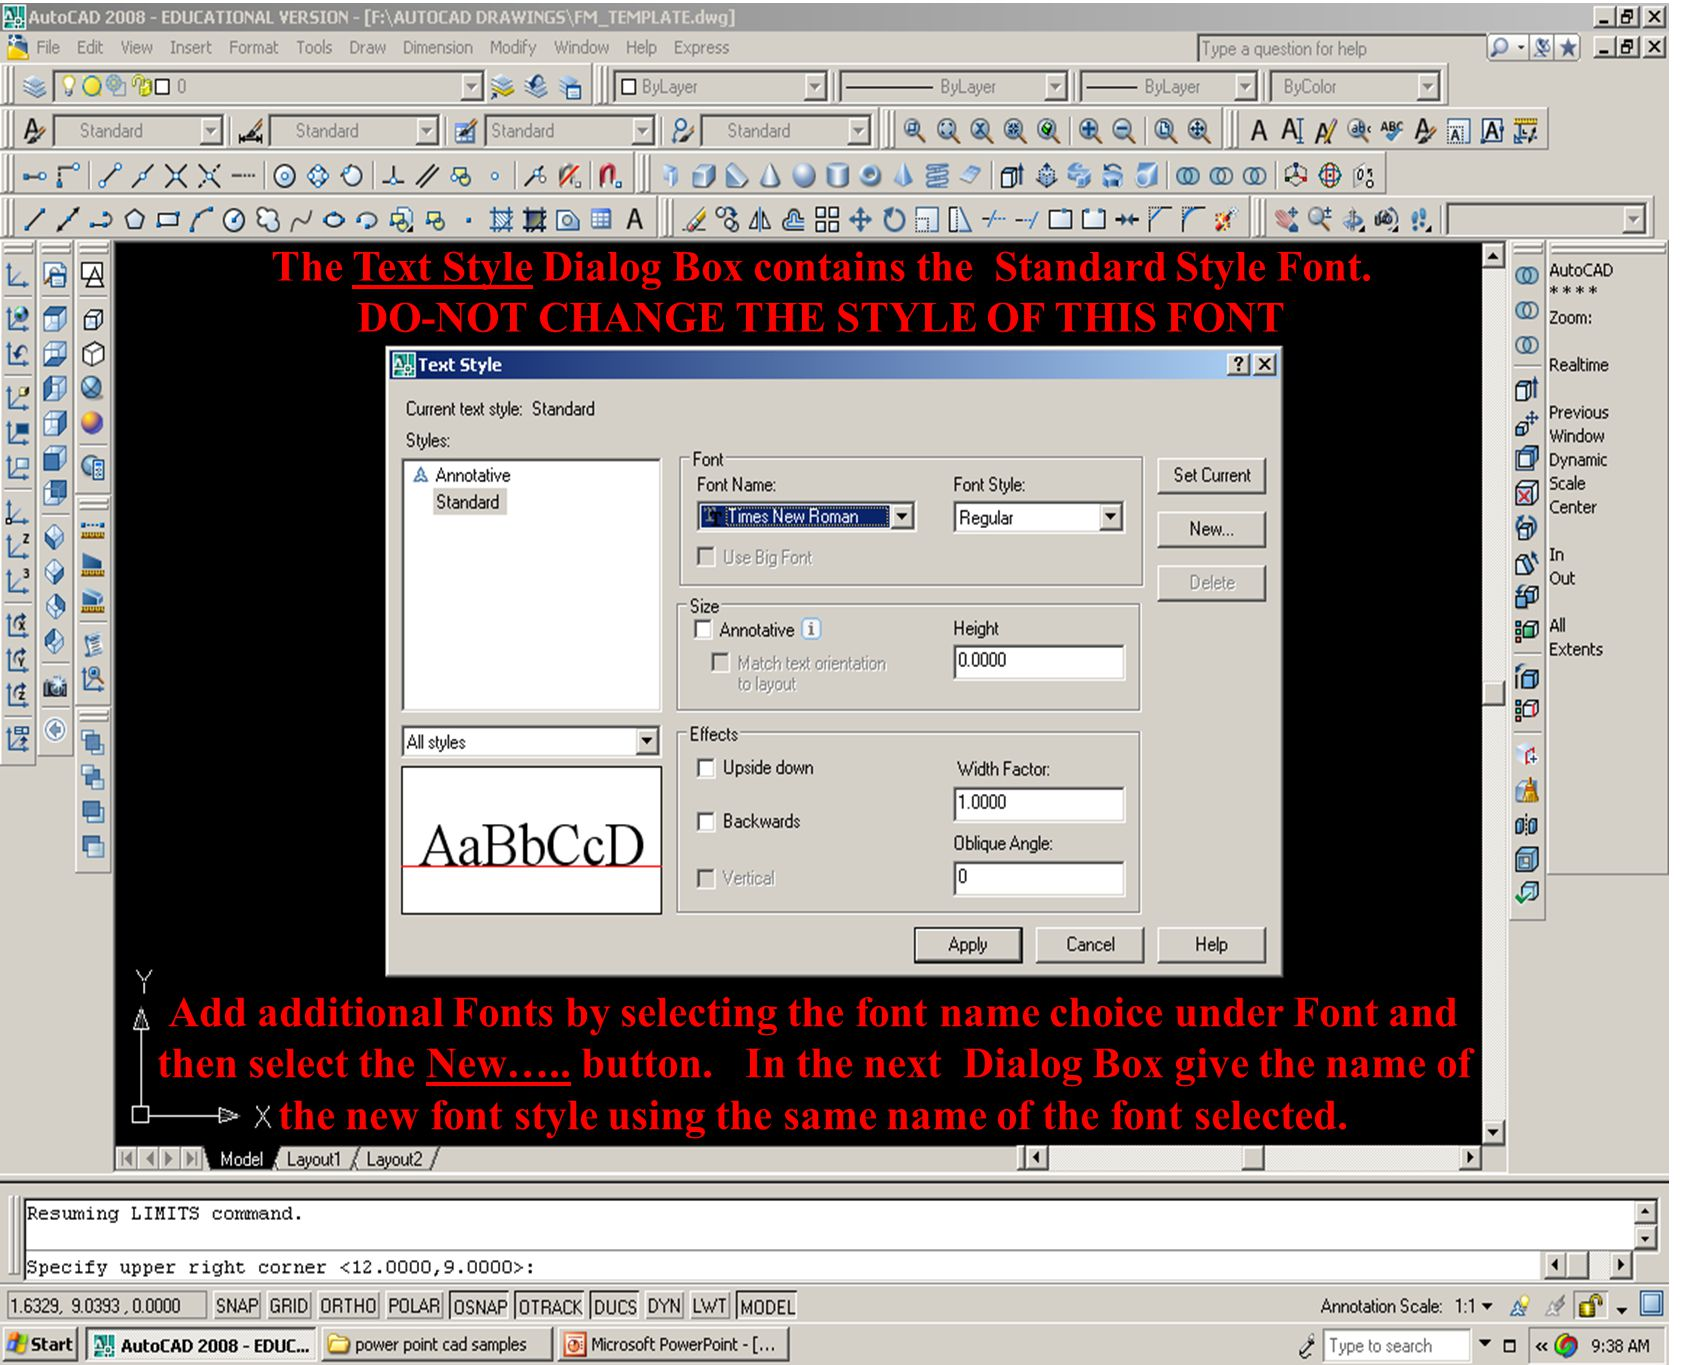 The Text Style Dialog Box contains the Standard Style Font.